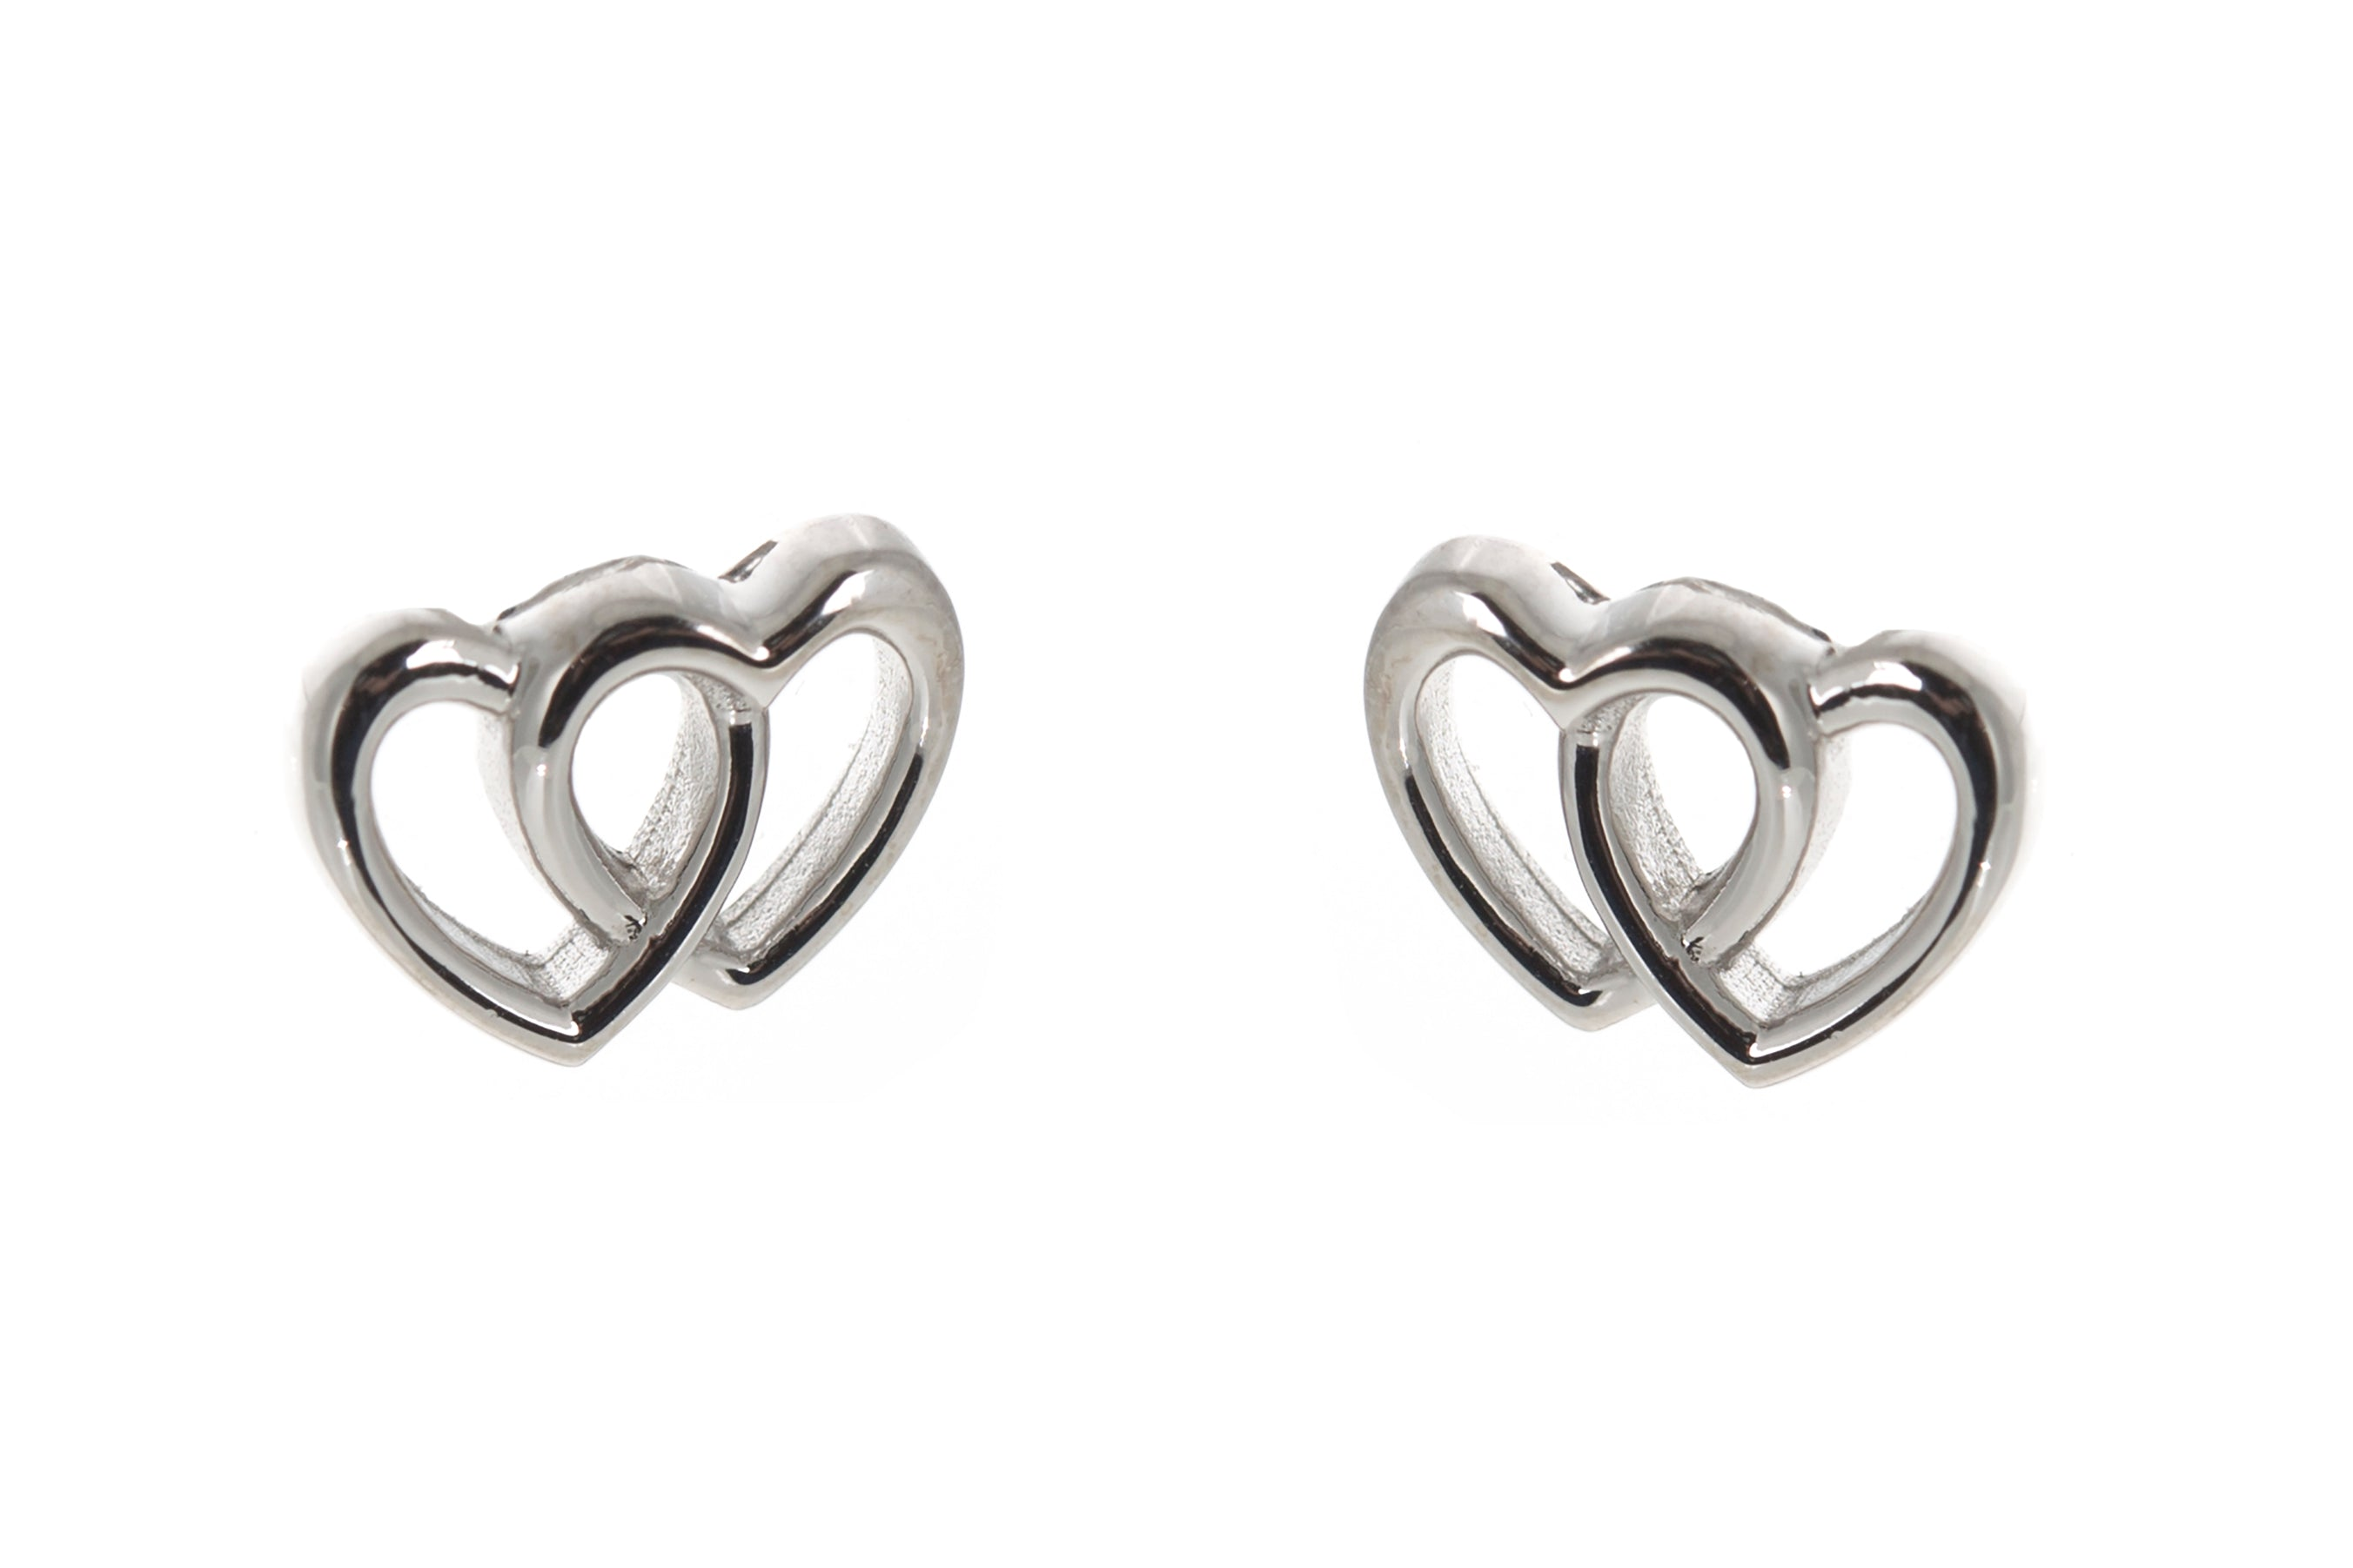 Linking hearts earrings